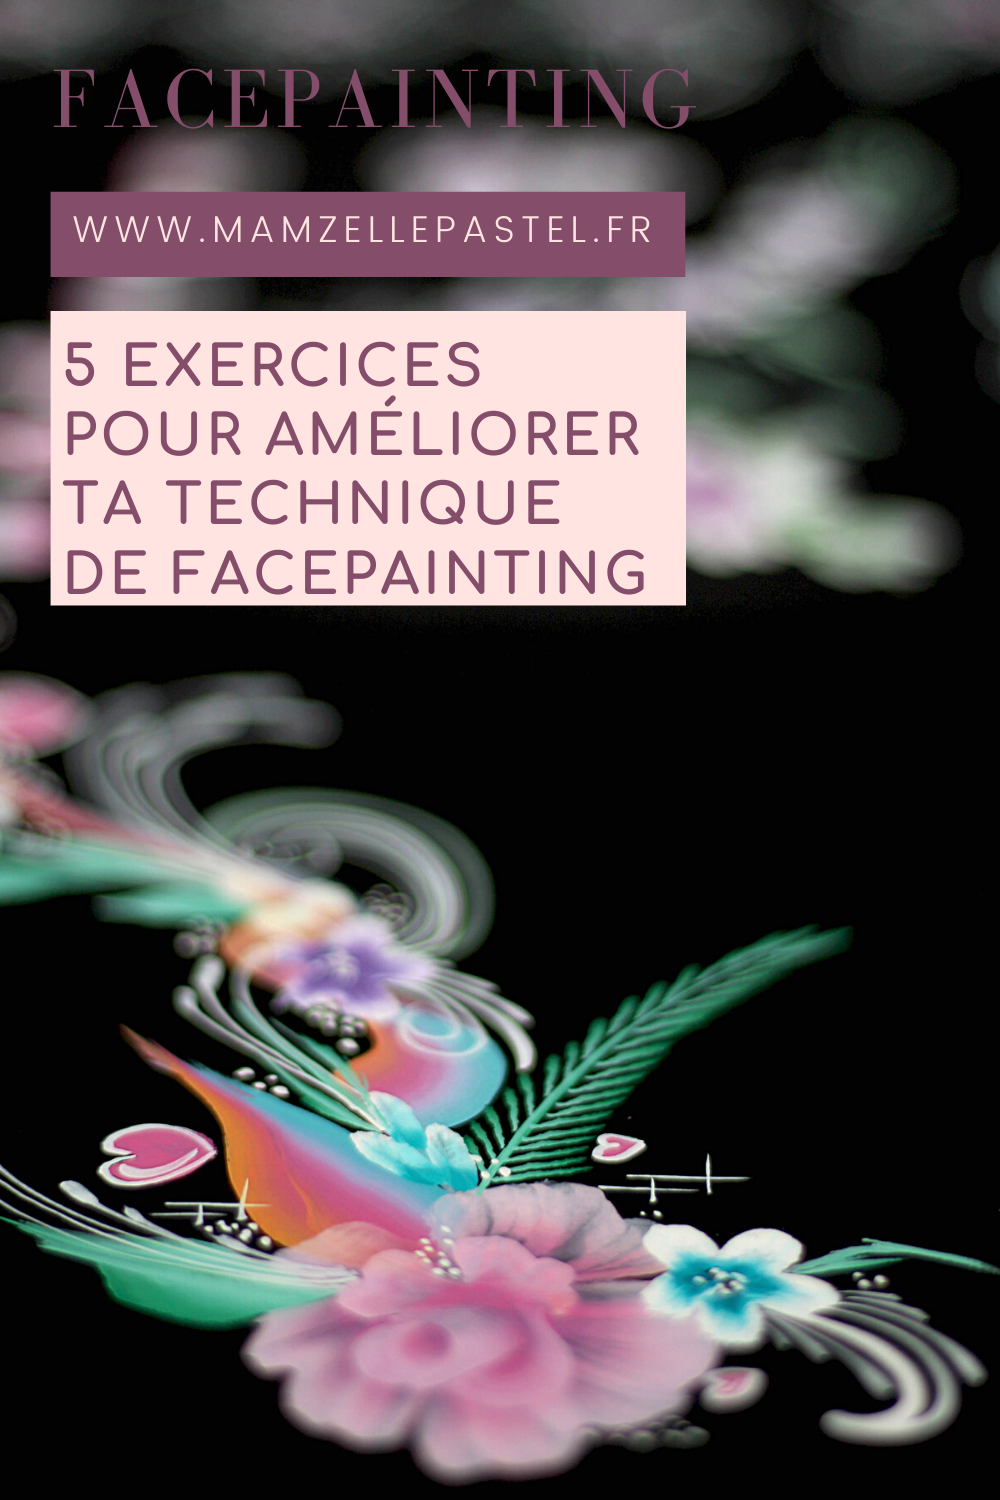 épingle pinterest facepainting